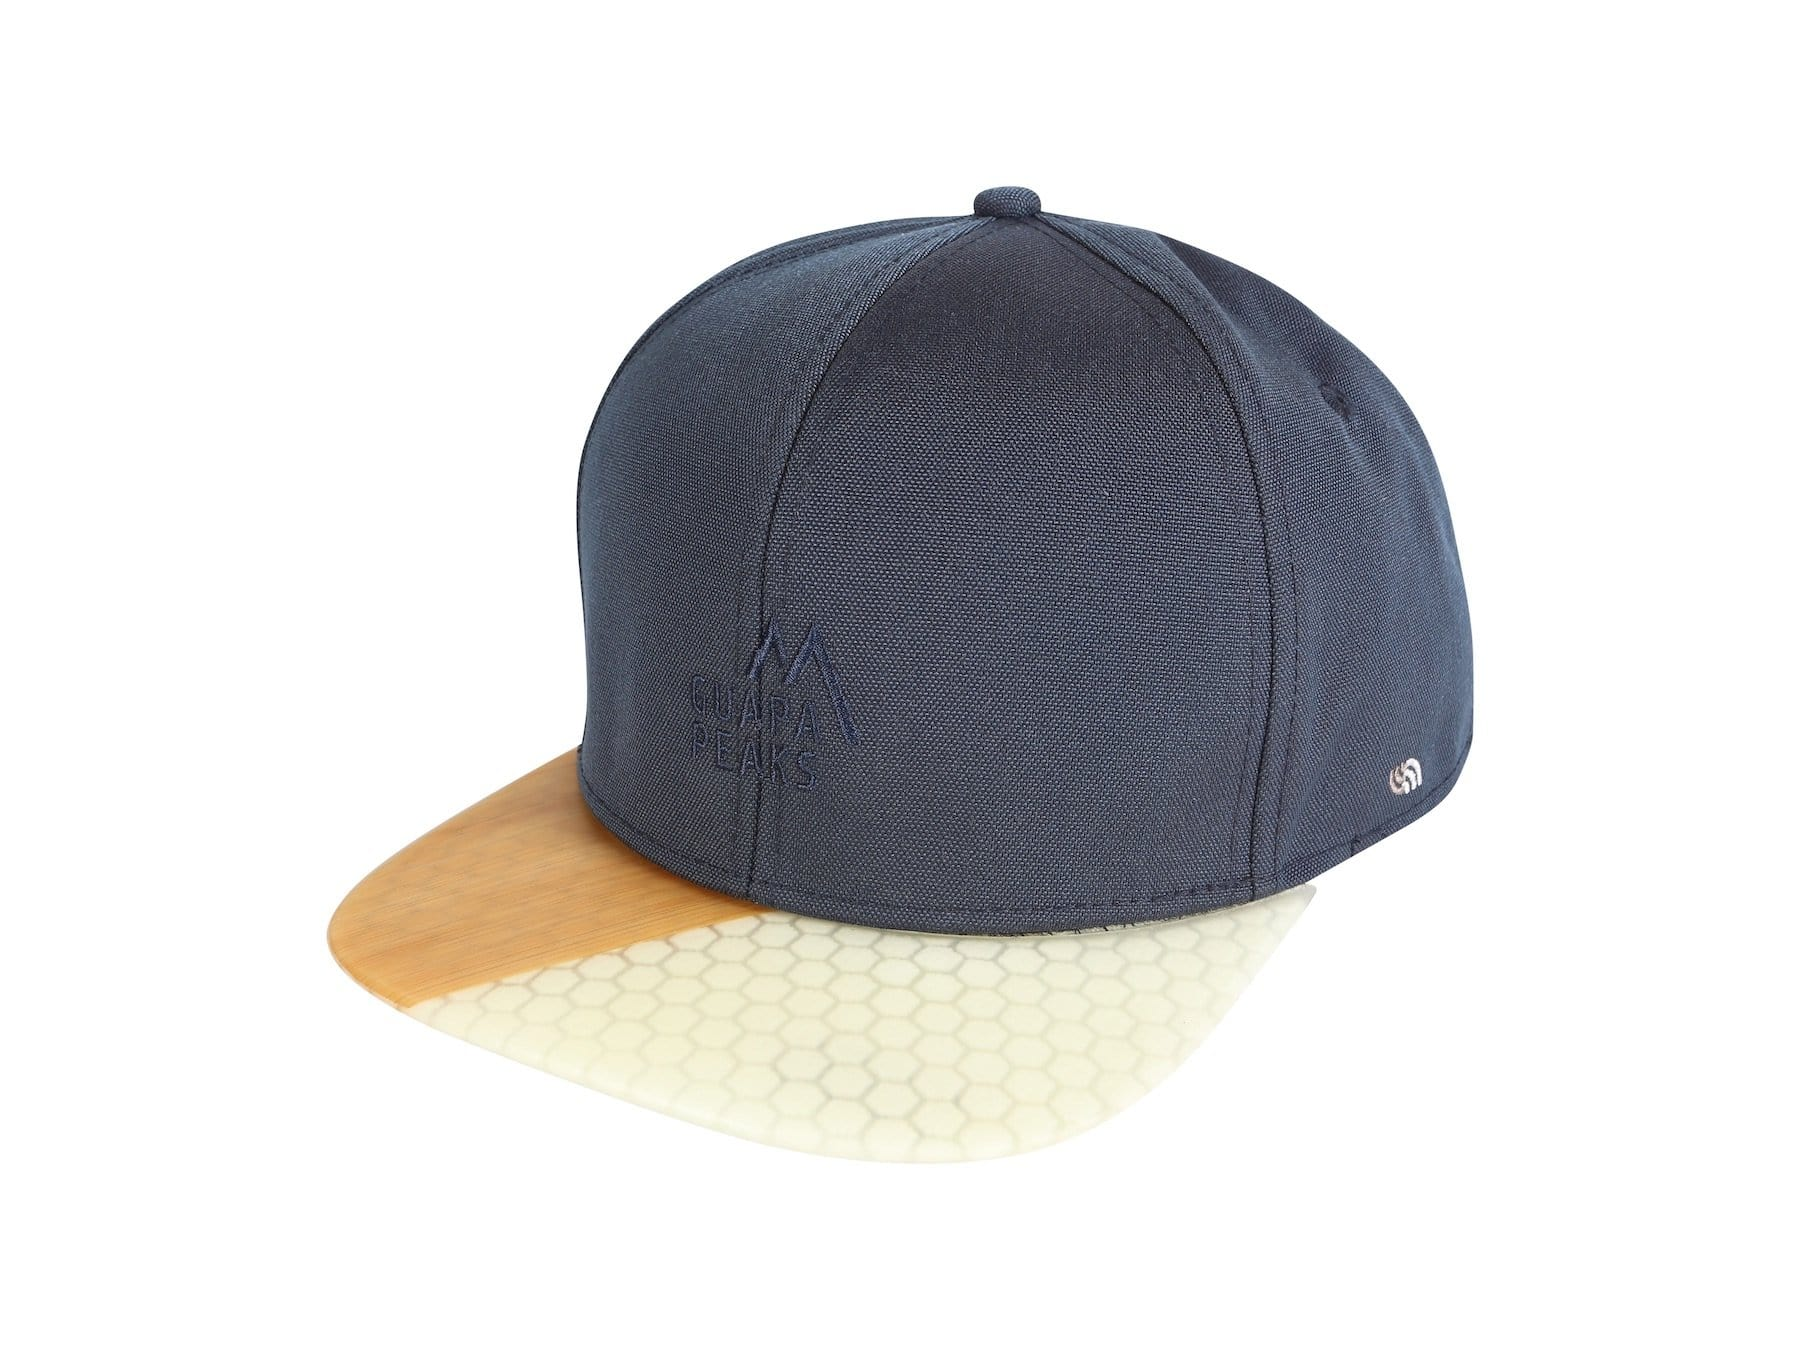 Navy 6 Panel Cap Set | Bamboo Surf + Free Fabric Visor